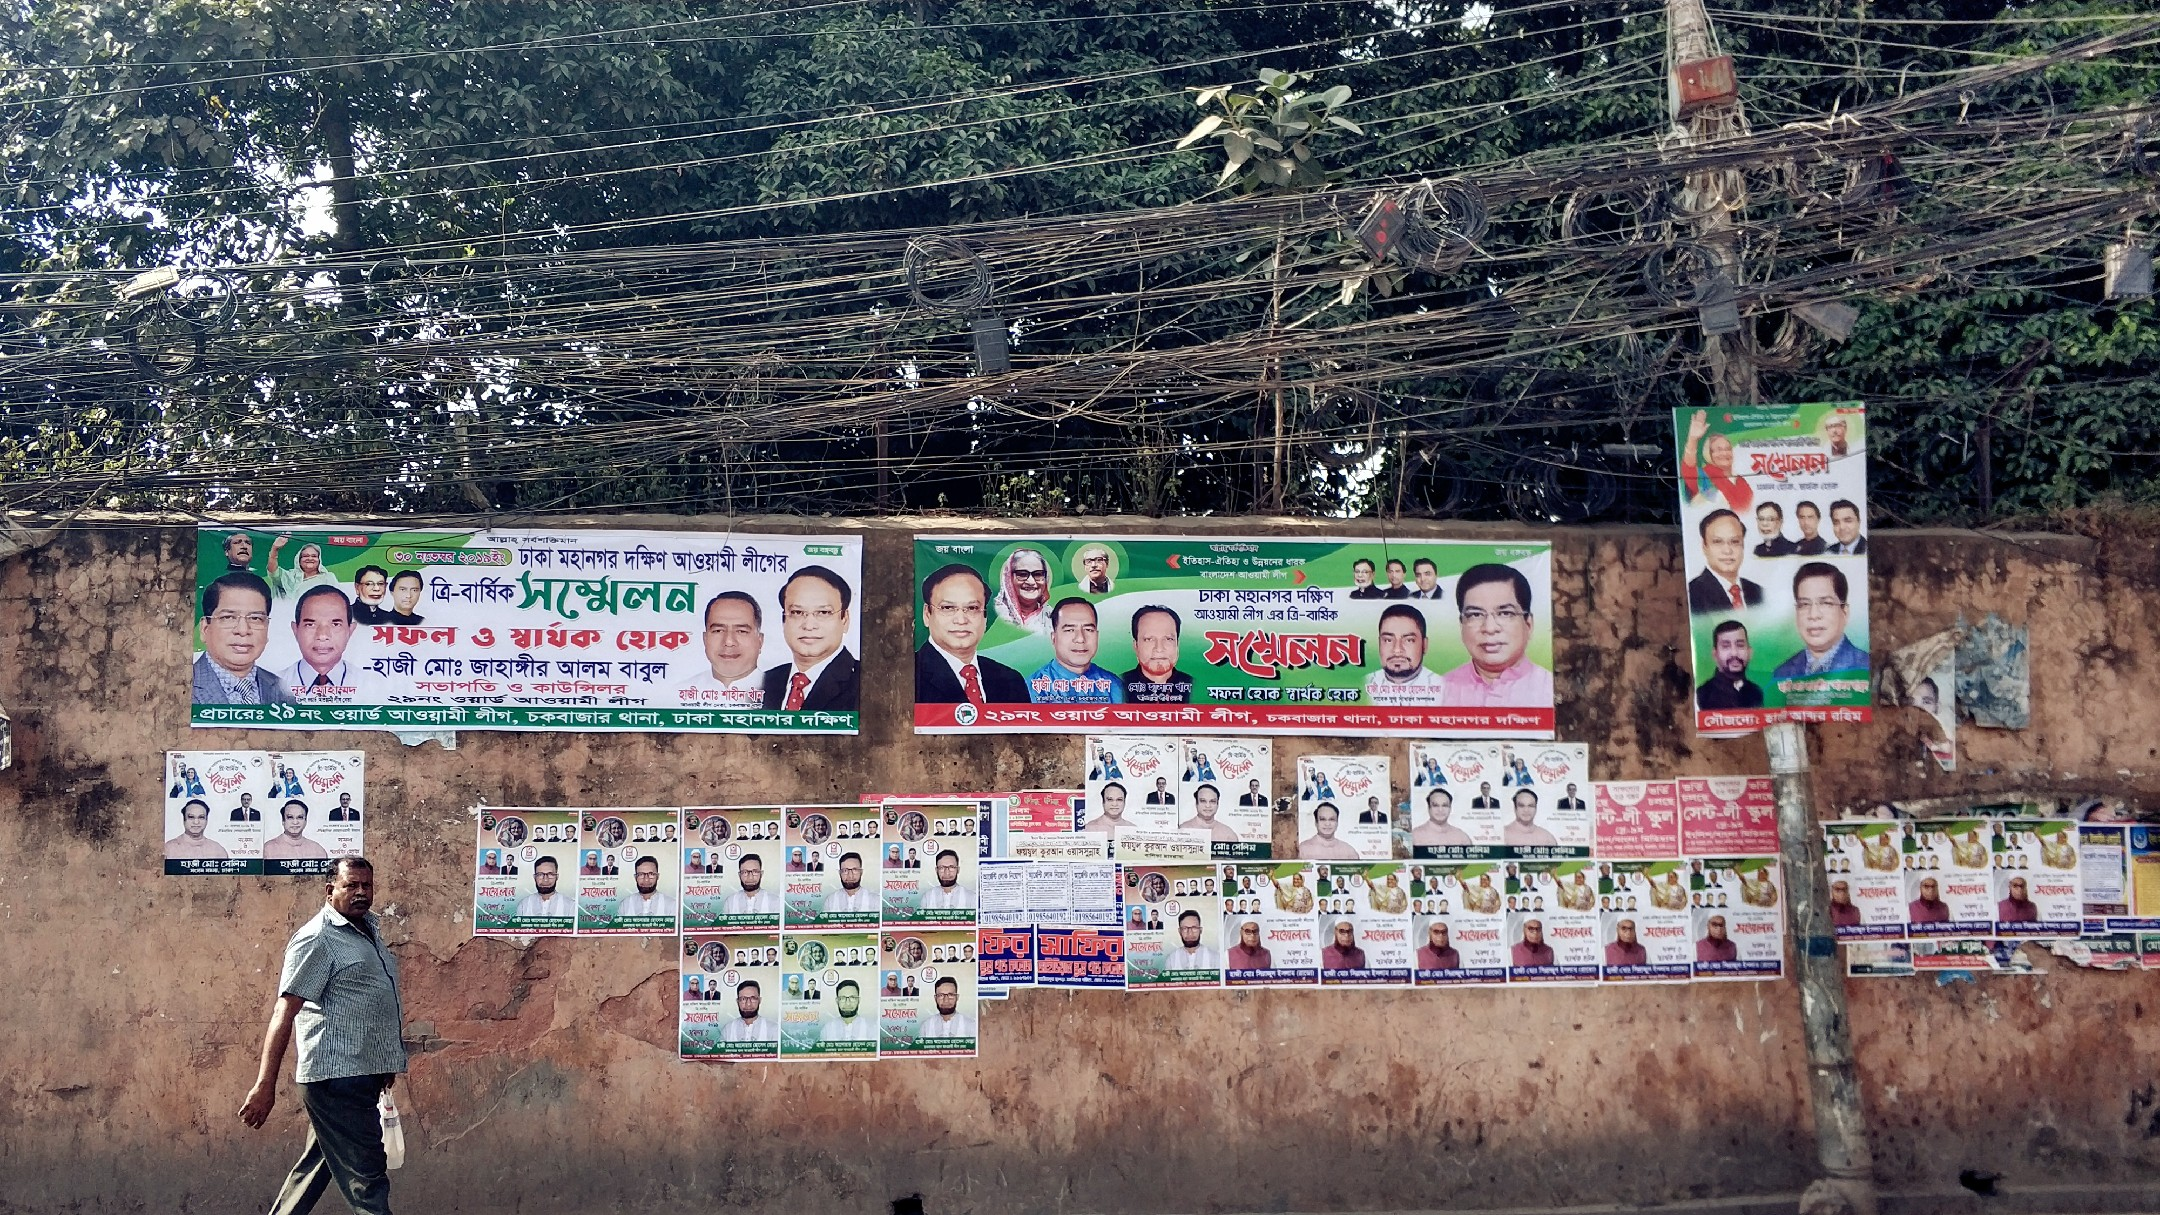 Man walks past political posters in Dhaka